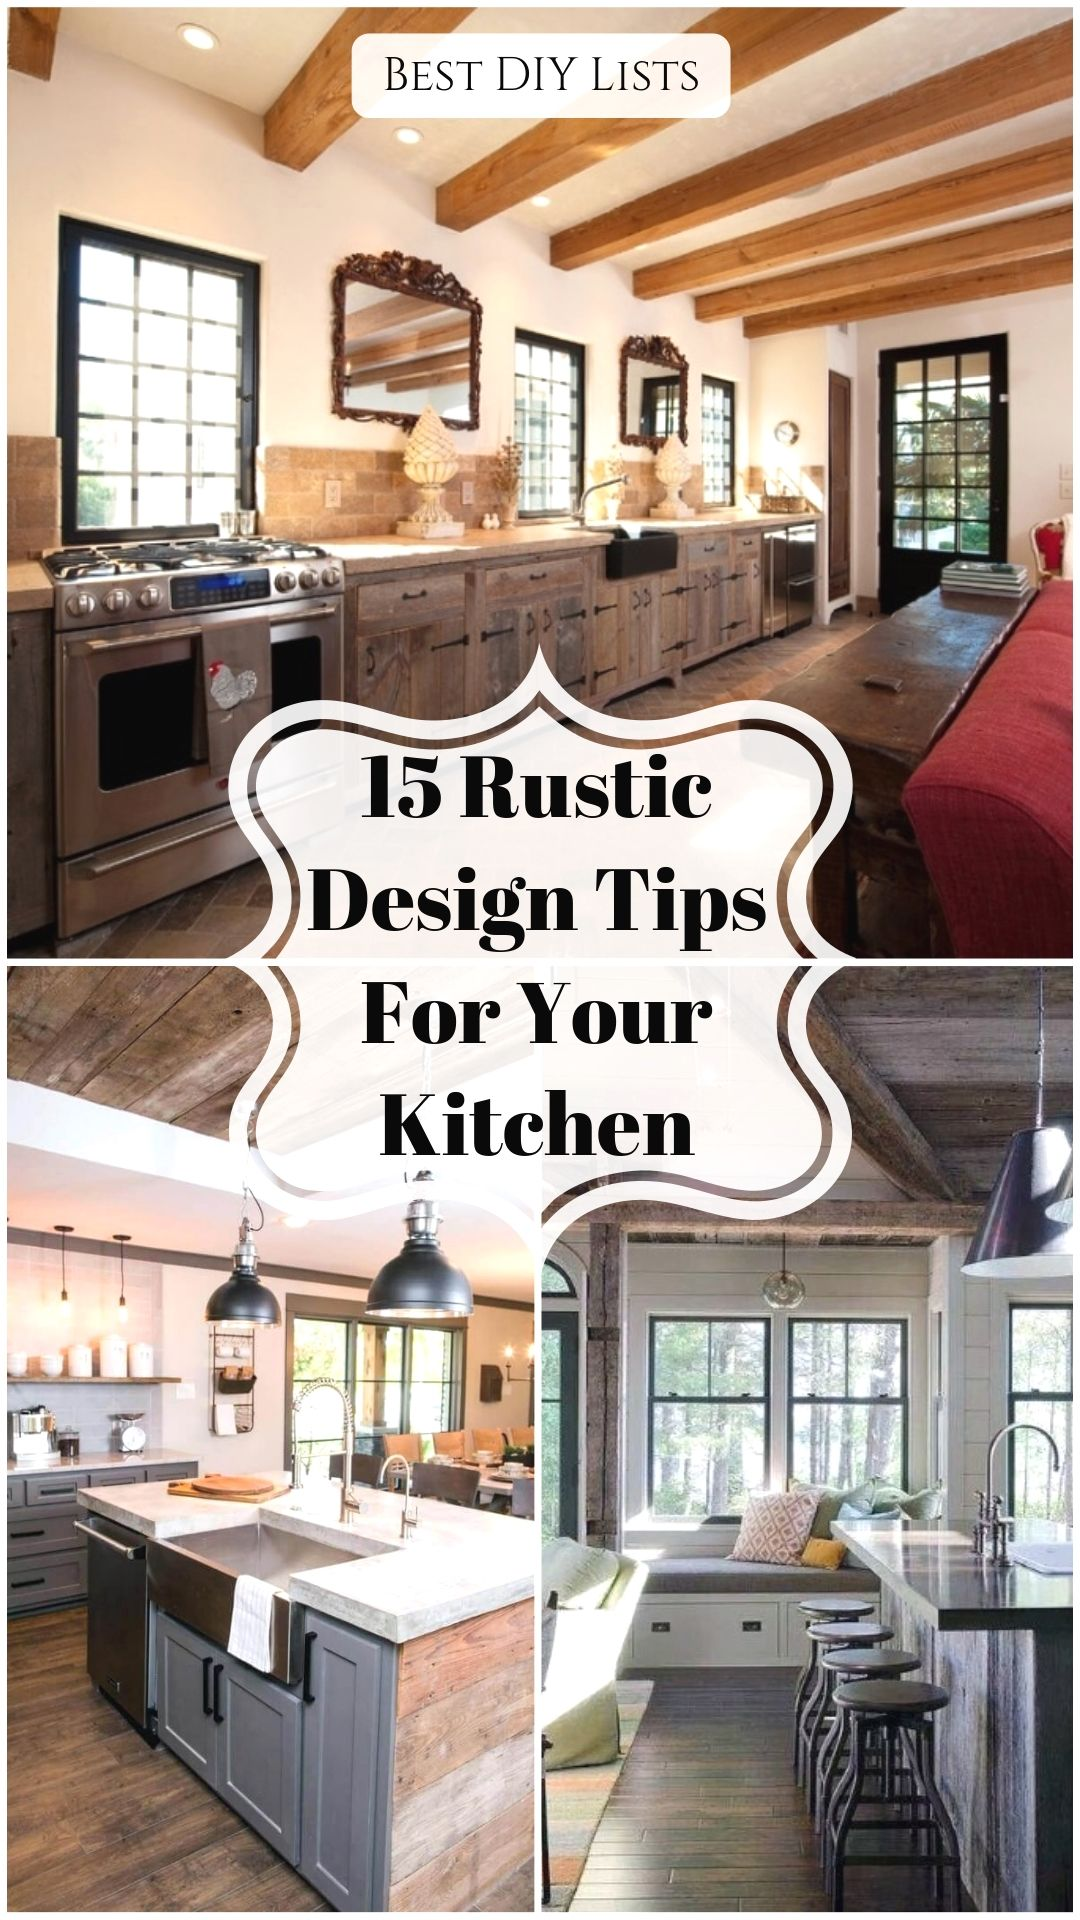 Rustic Kitchen Decorations BEST DIY LISTS in 2020